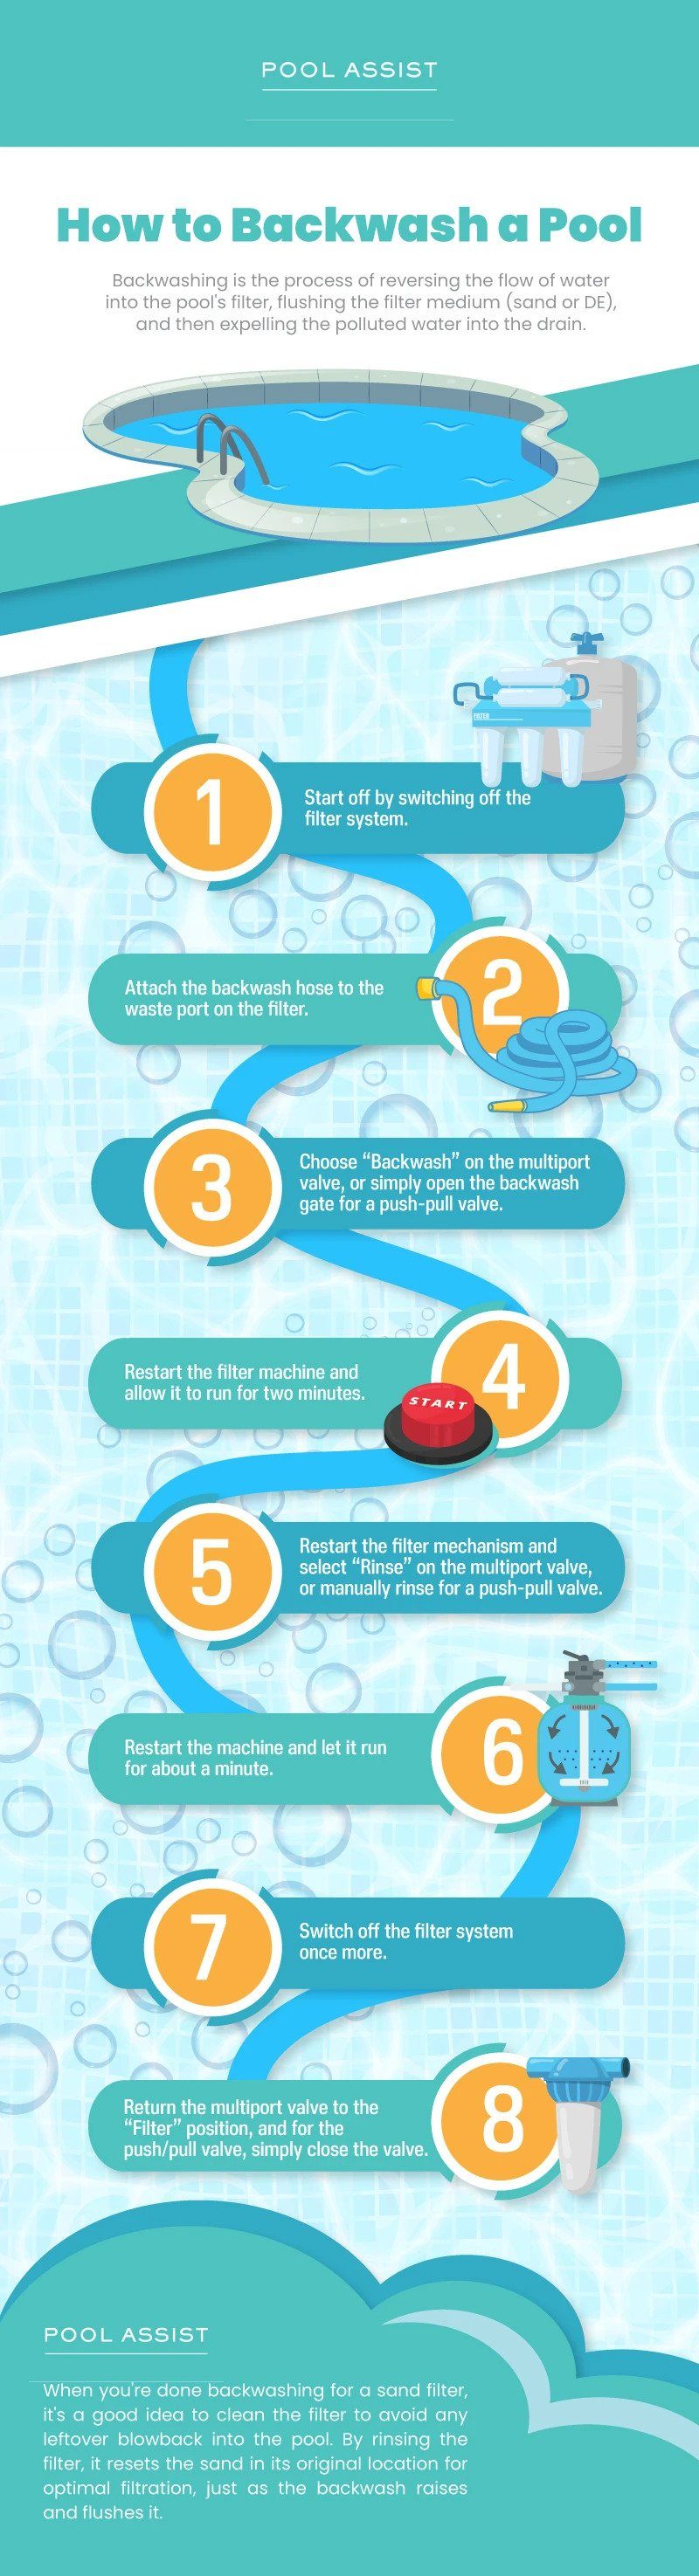 How_To_Backwash_A_Pool-infographic-plaza